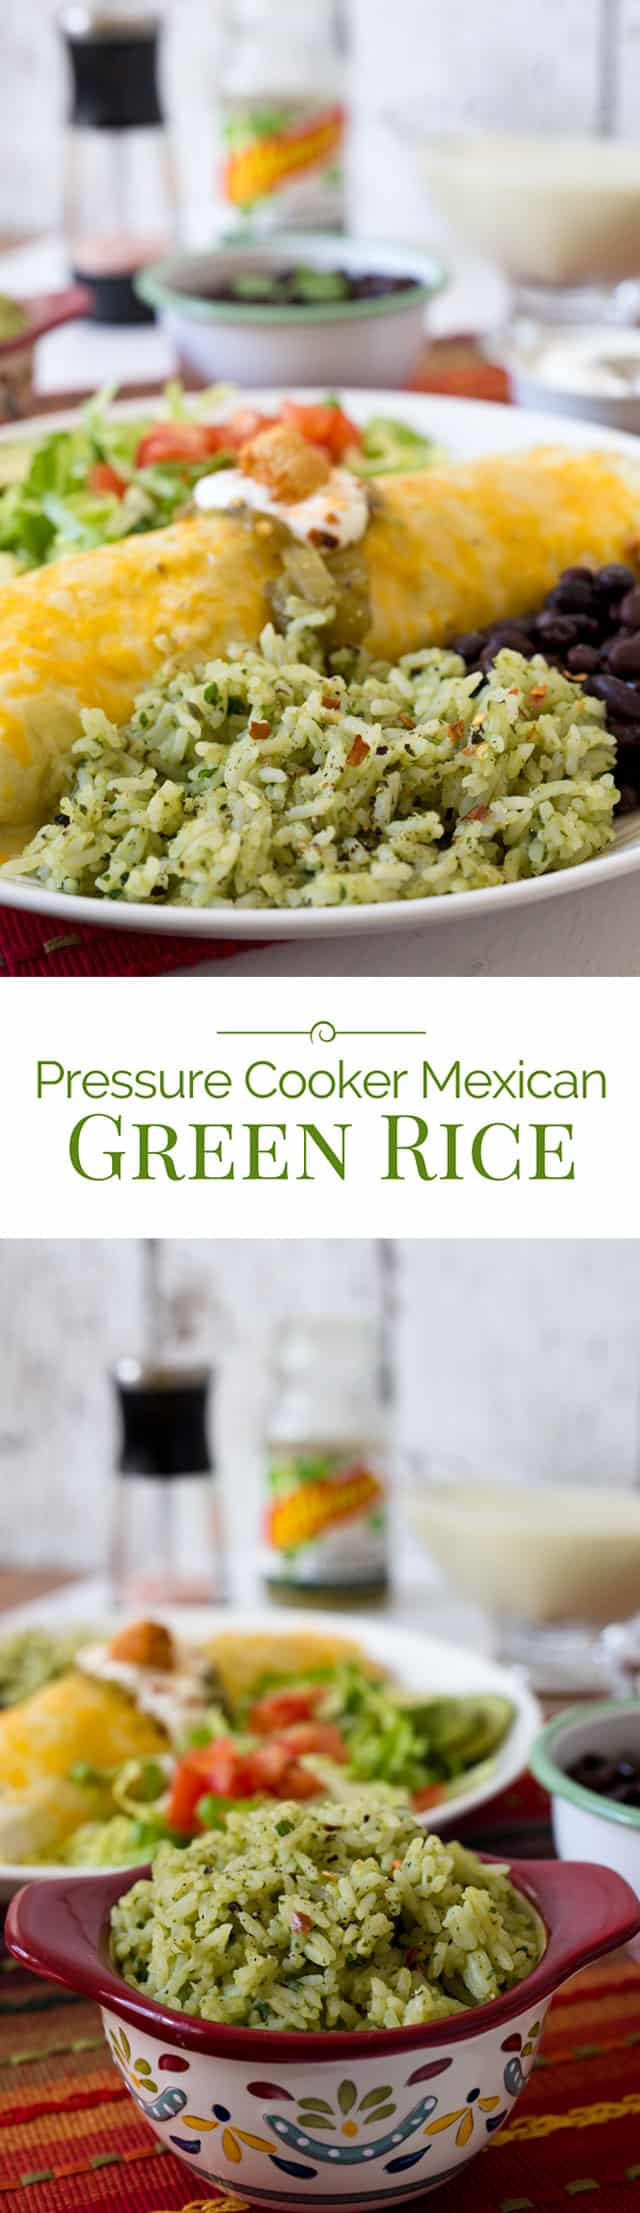 Pressure-Cooker-Mexican-Green-Rice-collage